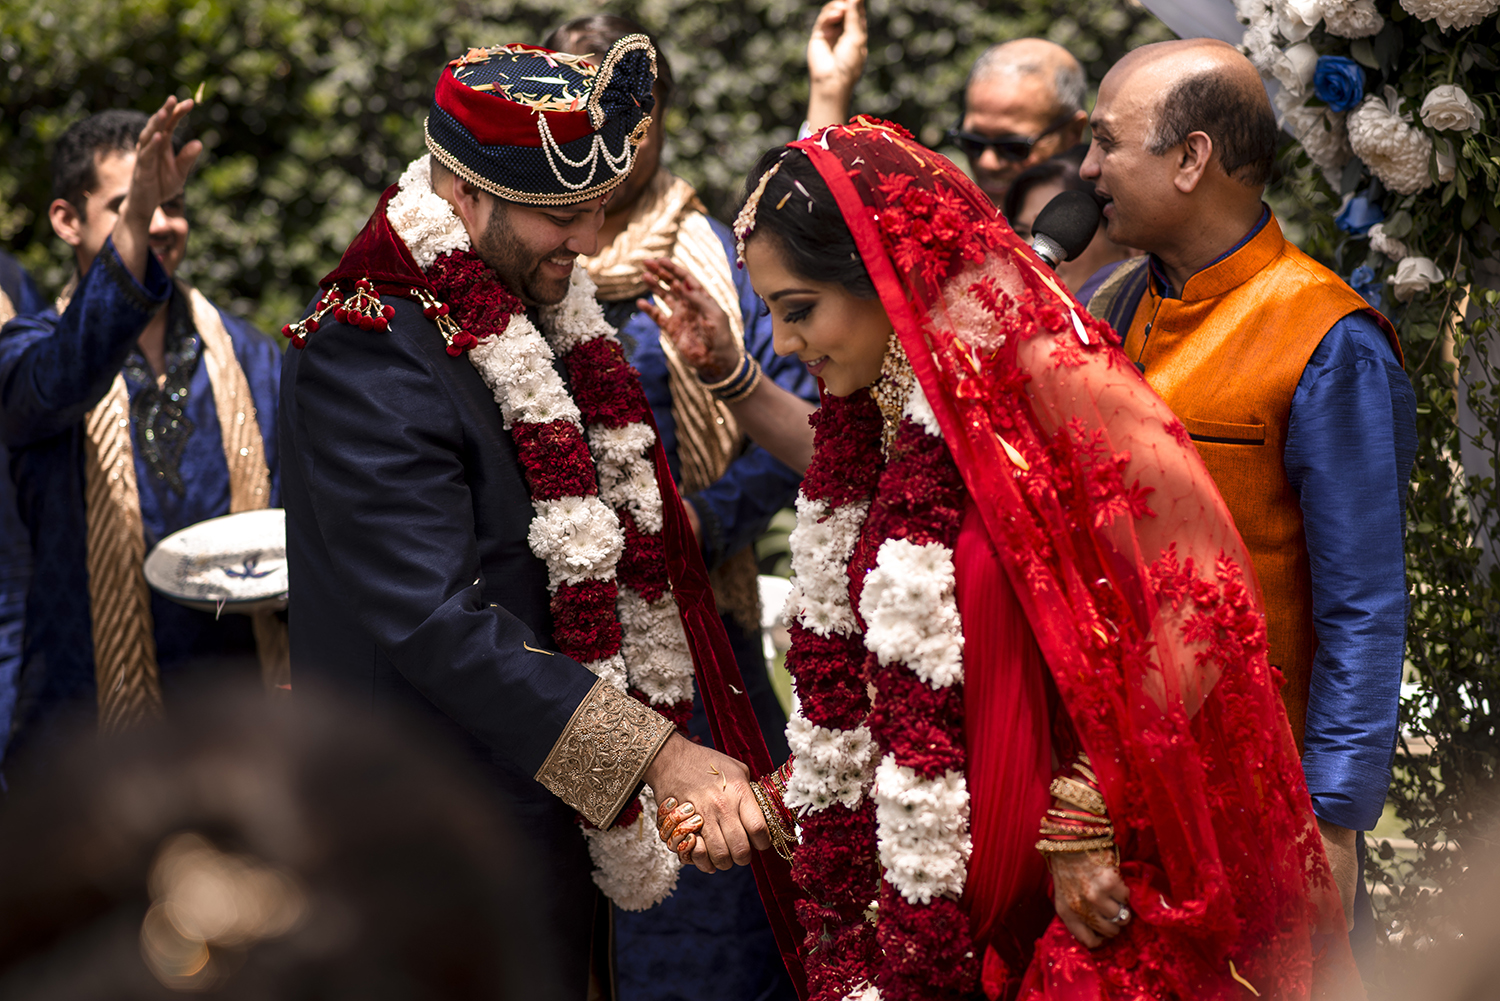 indian_wedding_san_miguel_de_allende_chio_garcia_photographer (41).jpg